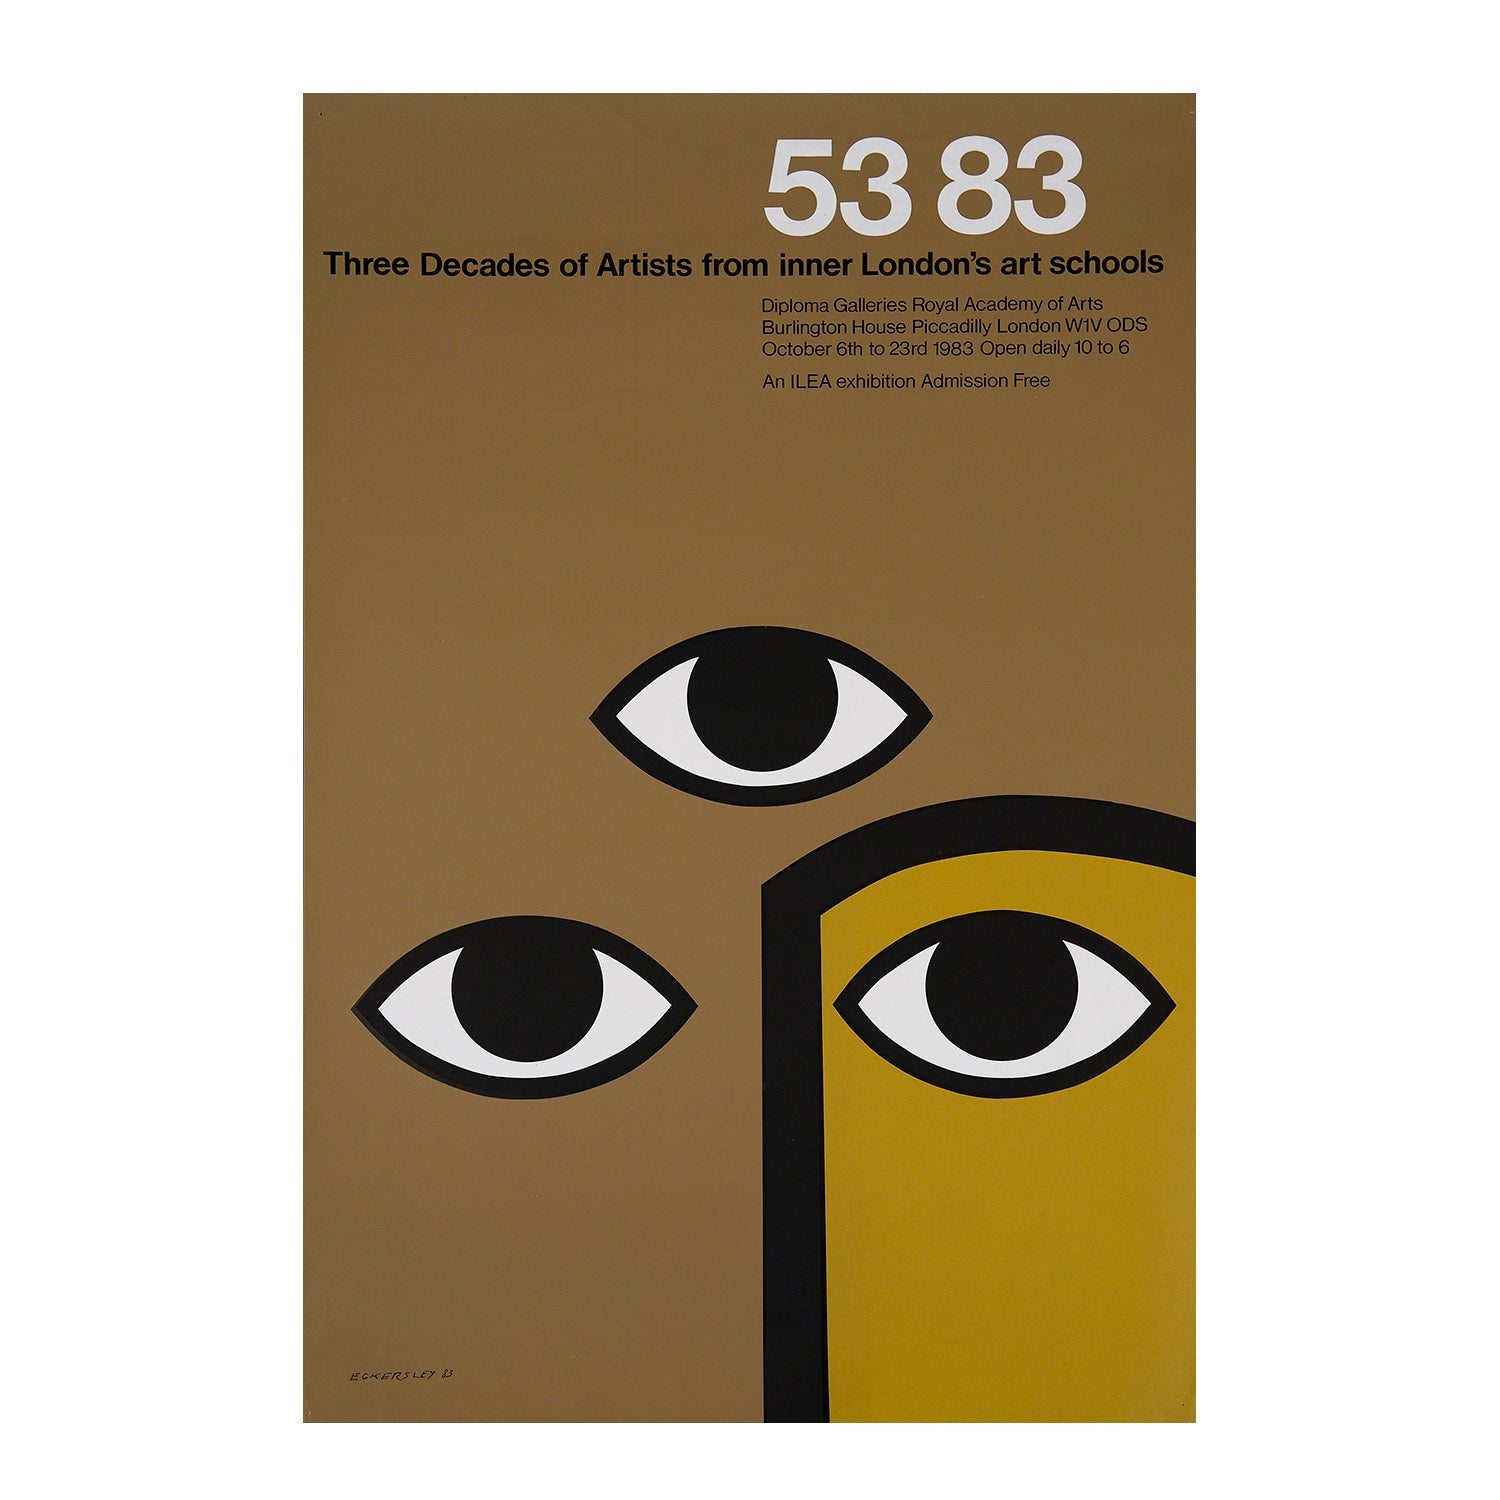 53 83. Three decades of artists from inner London's art schools